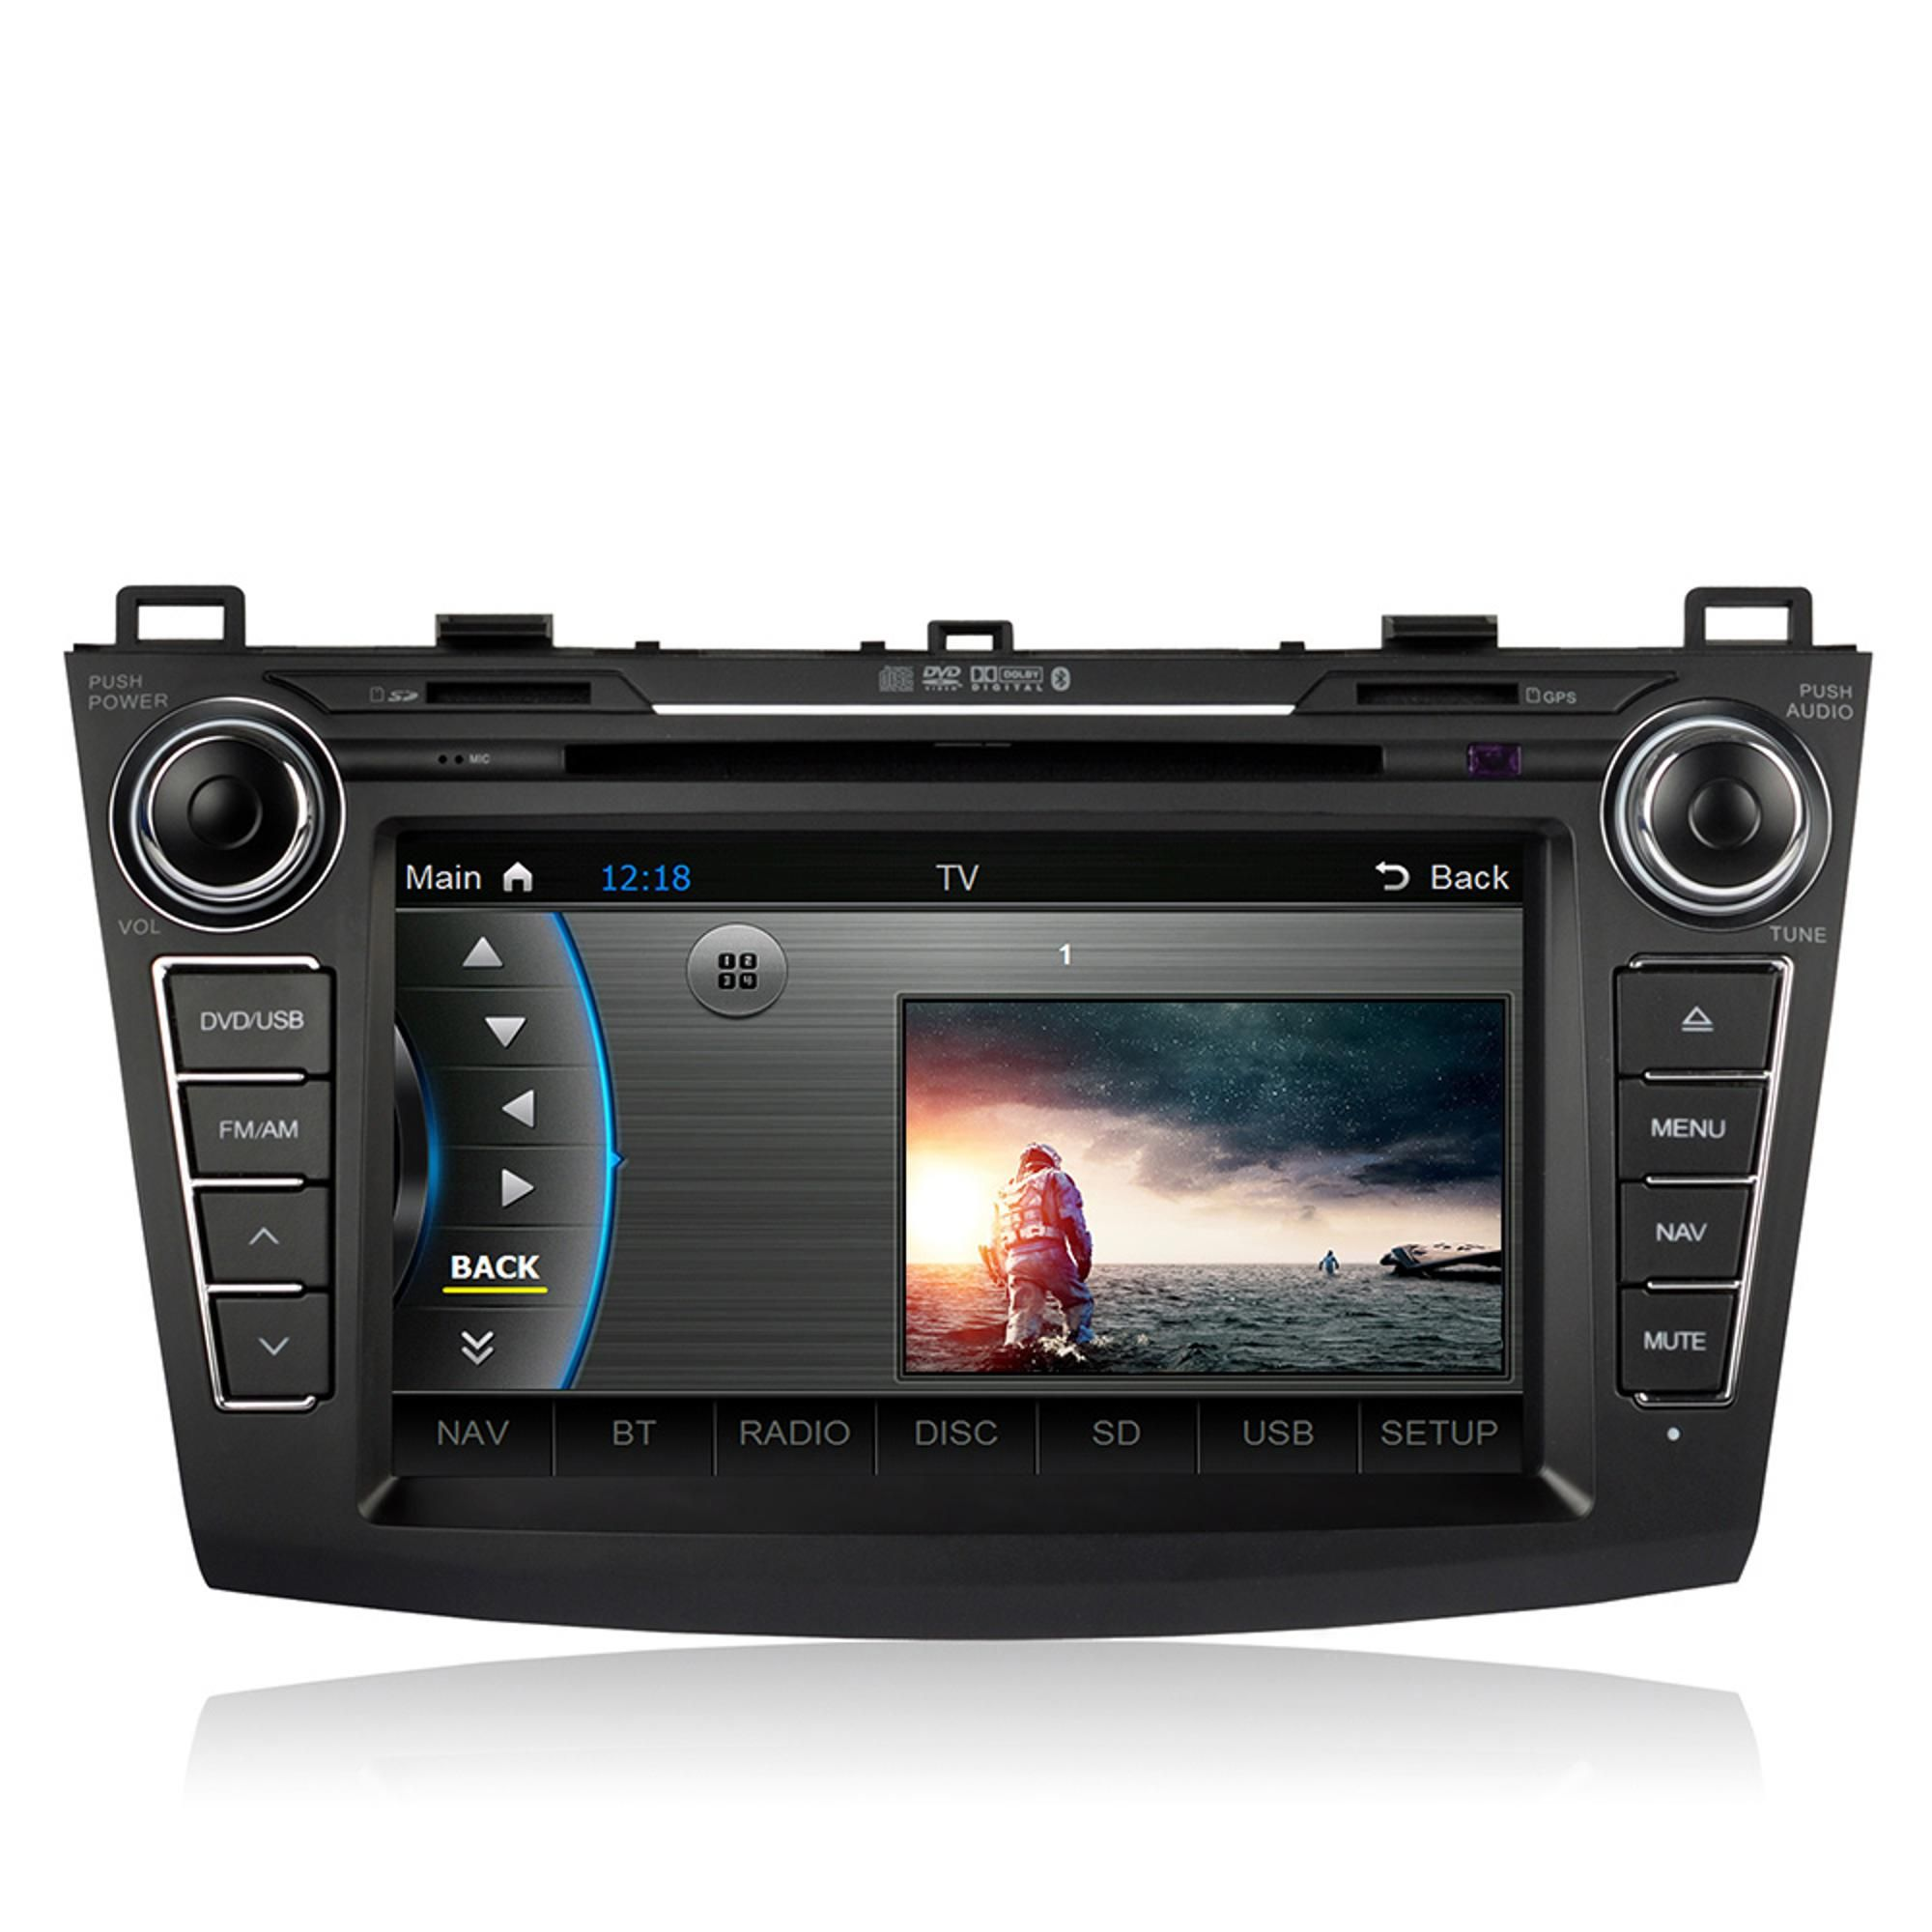 hight resolution of caska 8 inch hd touch screen car in dash dvd player 2 din car pc stereo head unit gps navigation bluetooth radio multimedia system for mazda 3